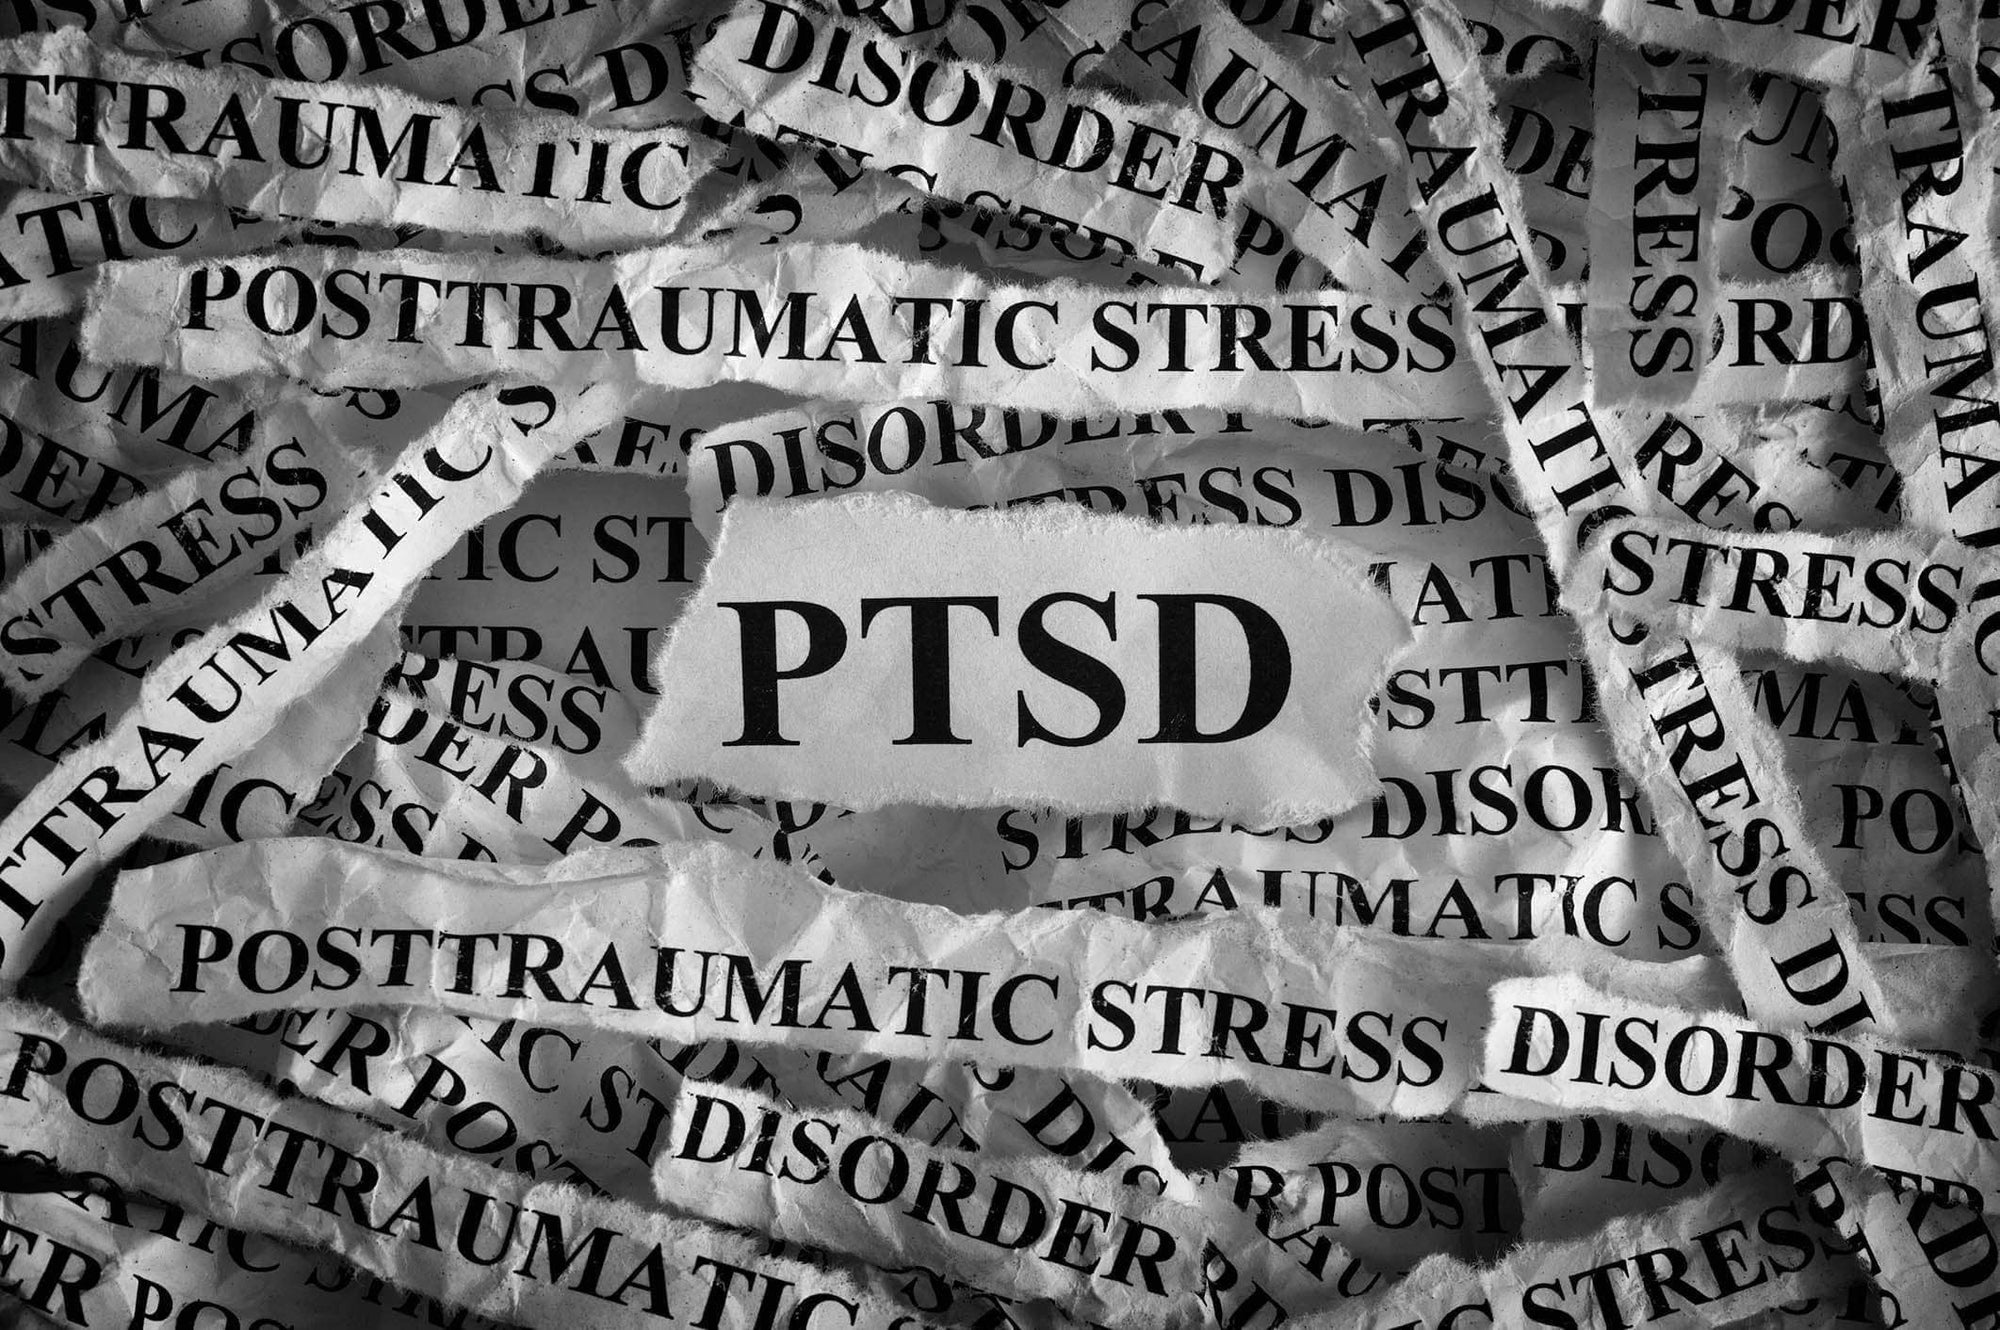 PTSD Affects Millions -  A Weighted Blanket Can Help